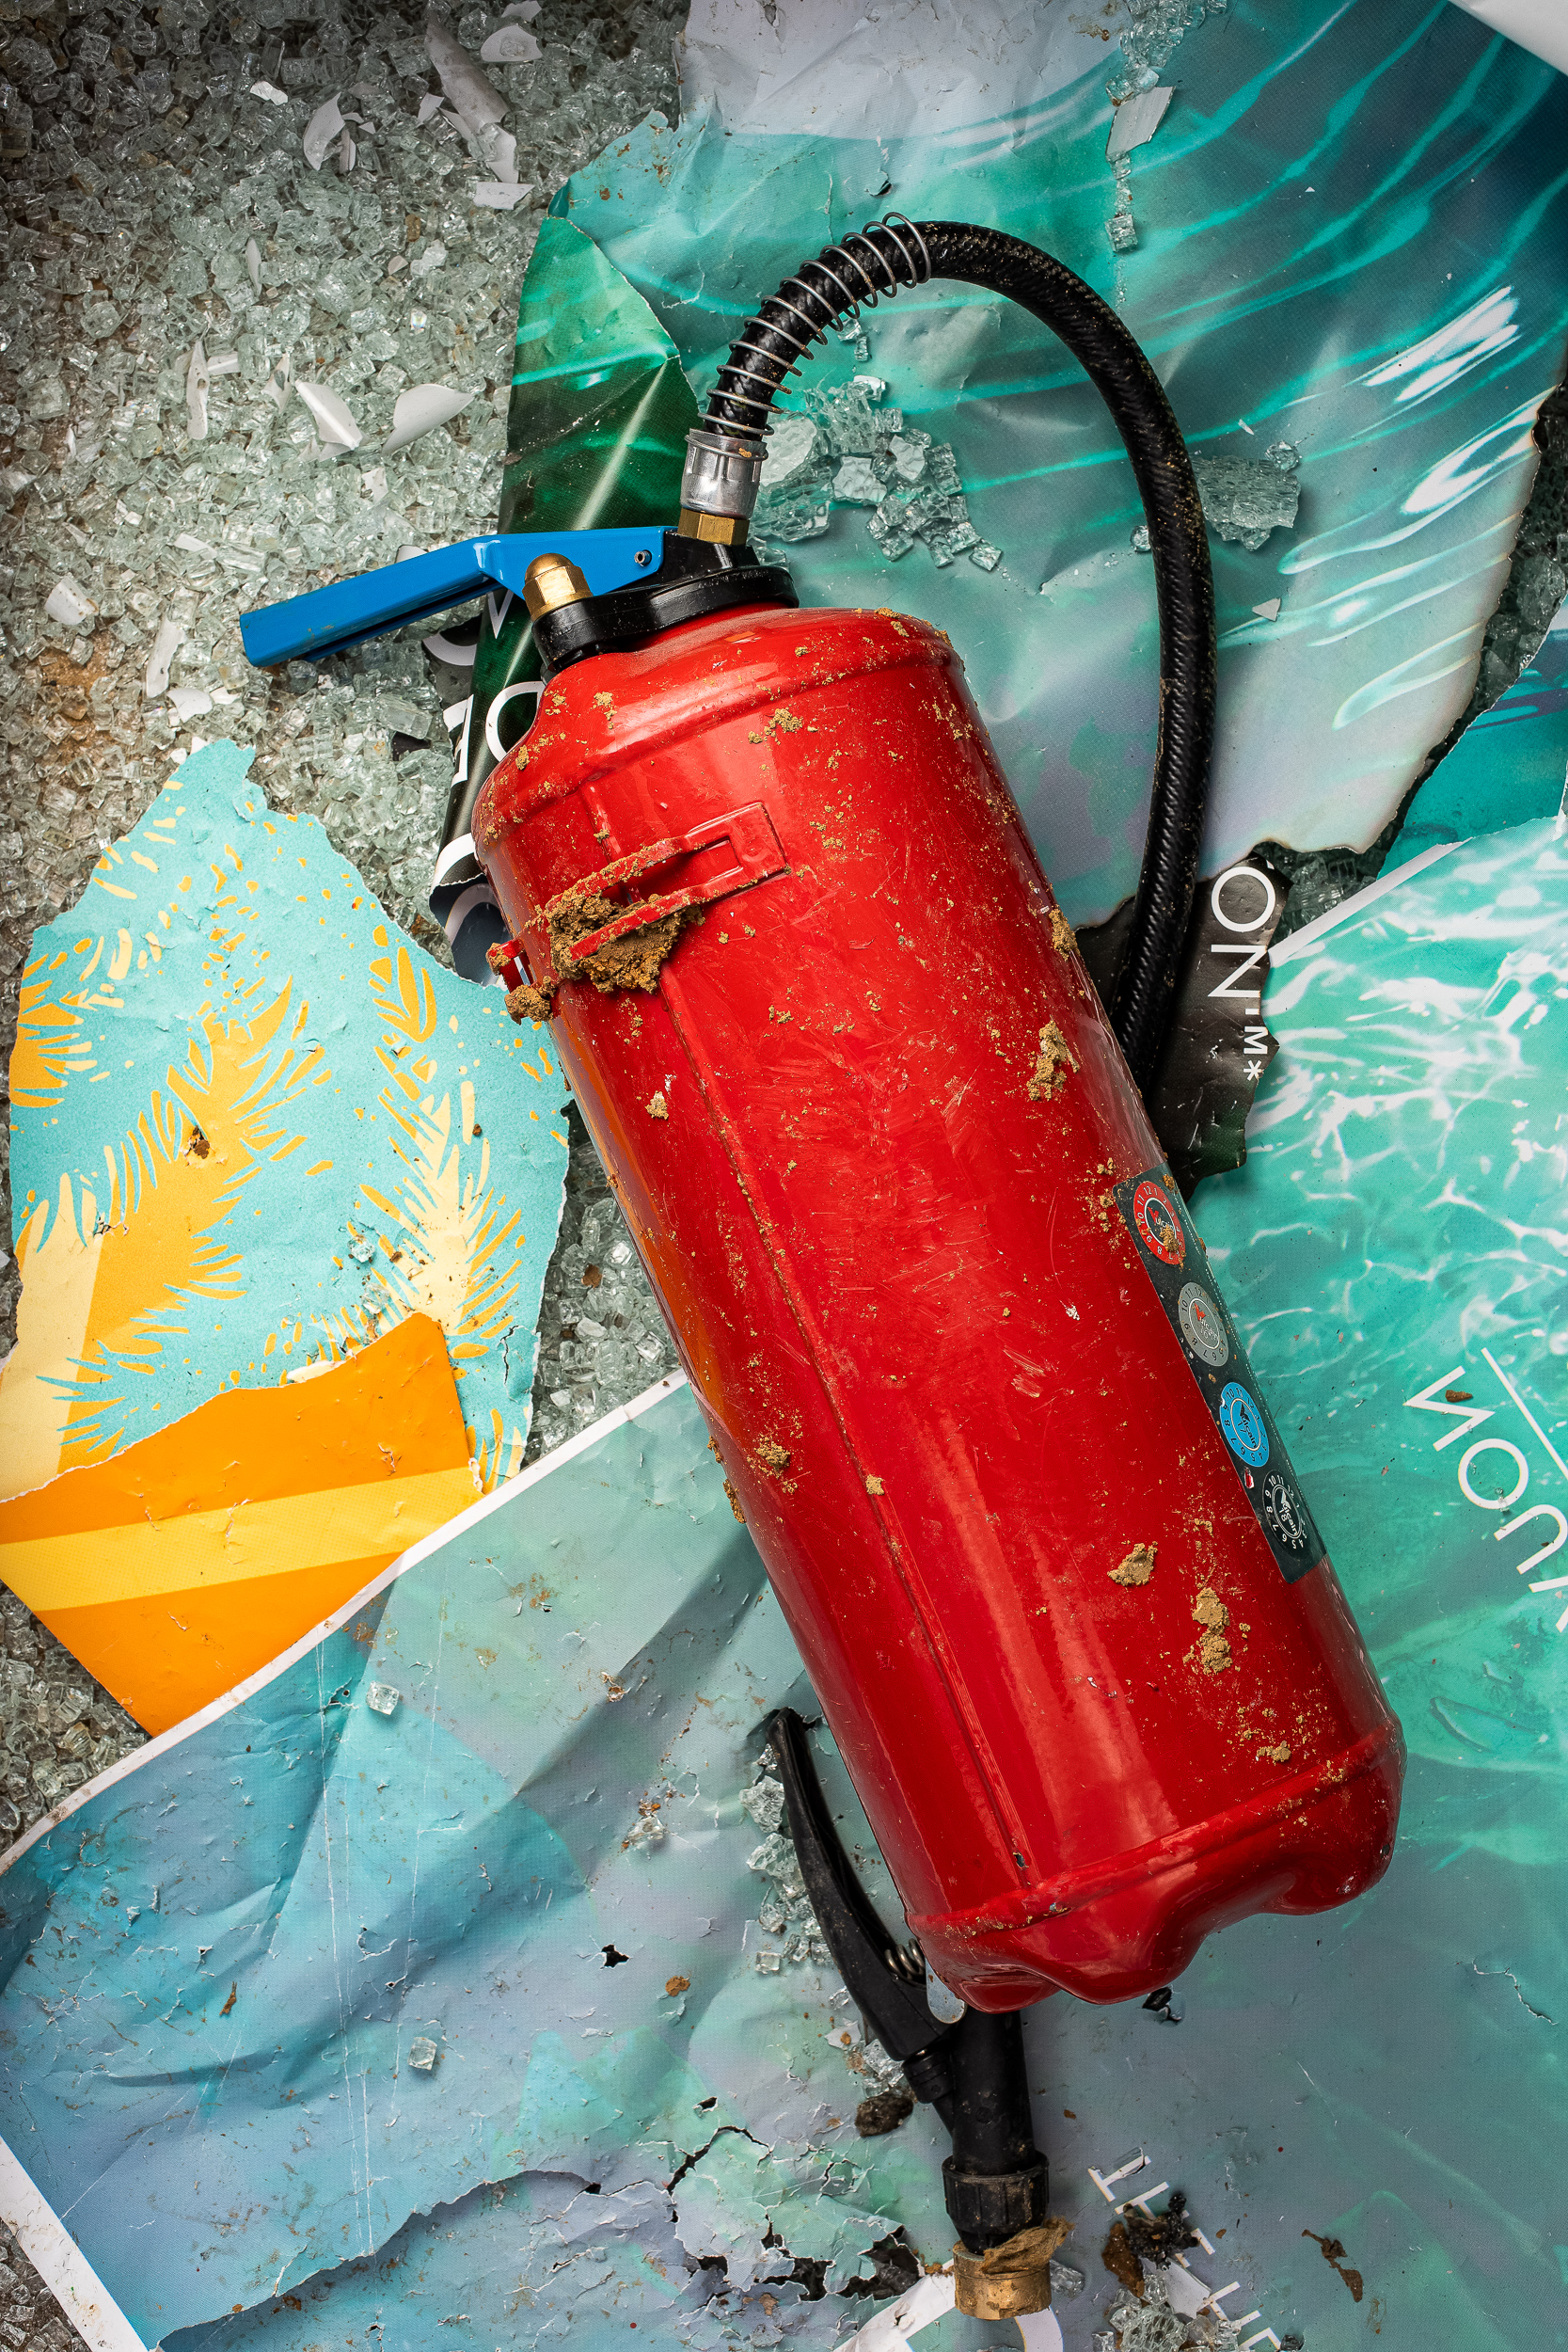 Fire extinguisher, torn posters & shattered glass, 2018